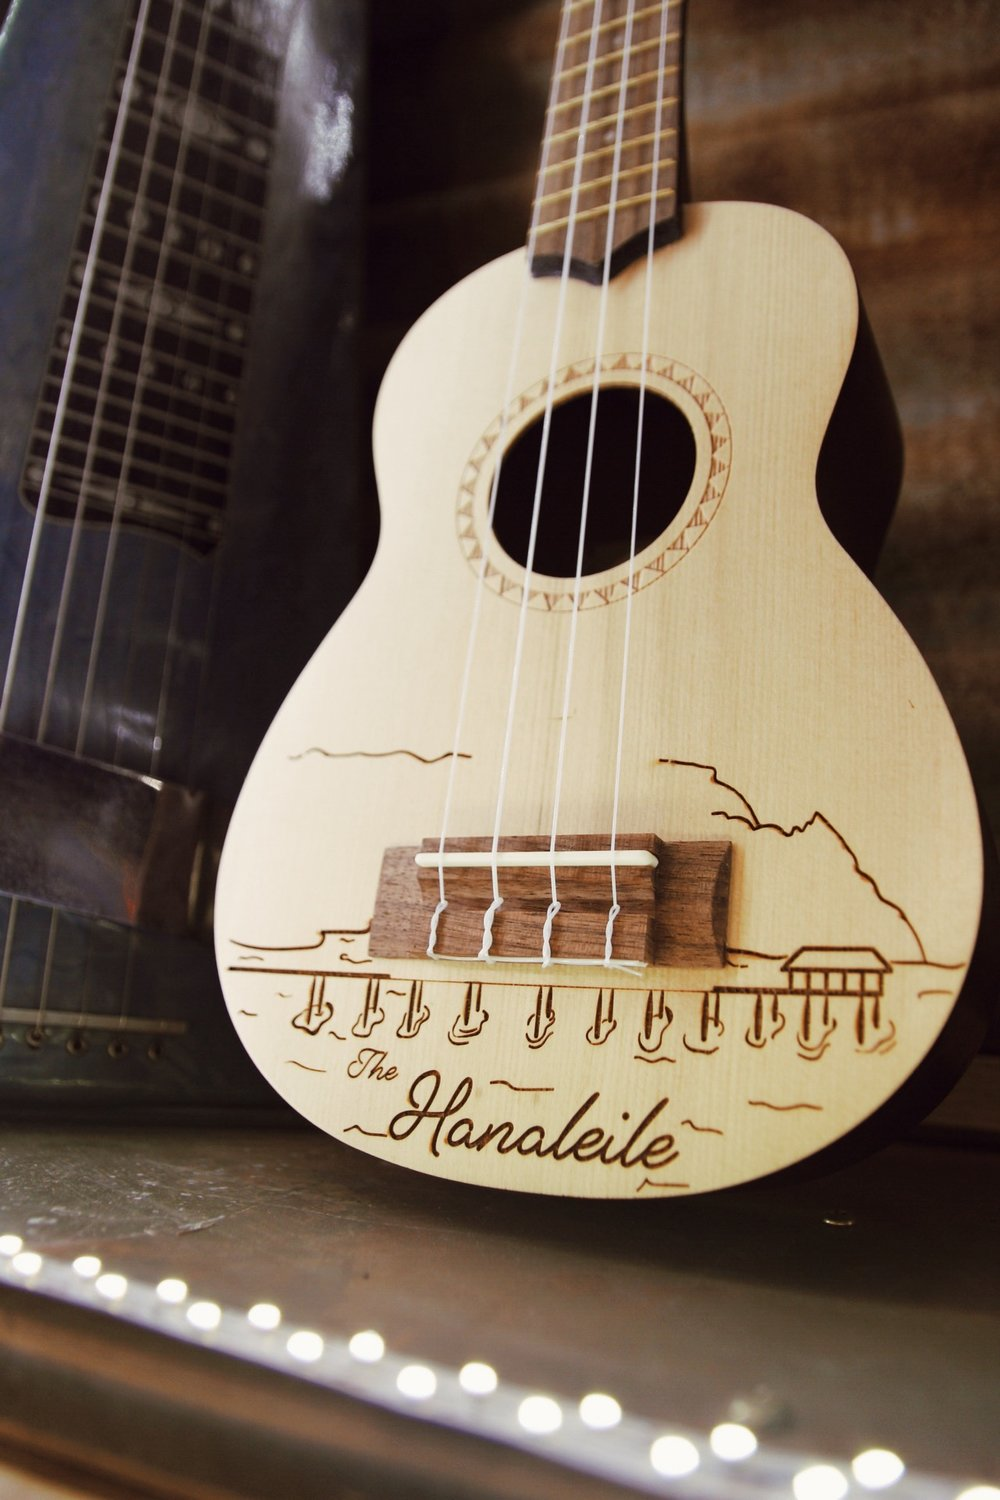 The Hanaleile - Our Hanaleile was designed by owner, Tora Smart, and is exclusive to Hanalei Strings. It depicts our historic Hanalei Pier and mountain range…